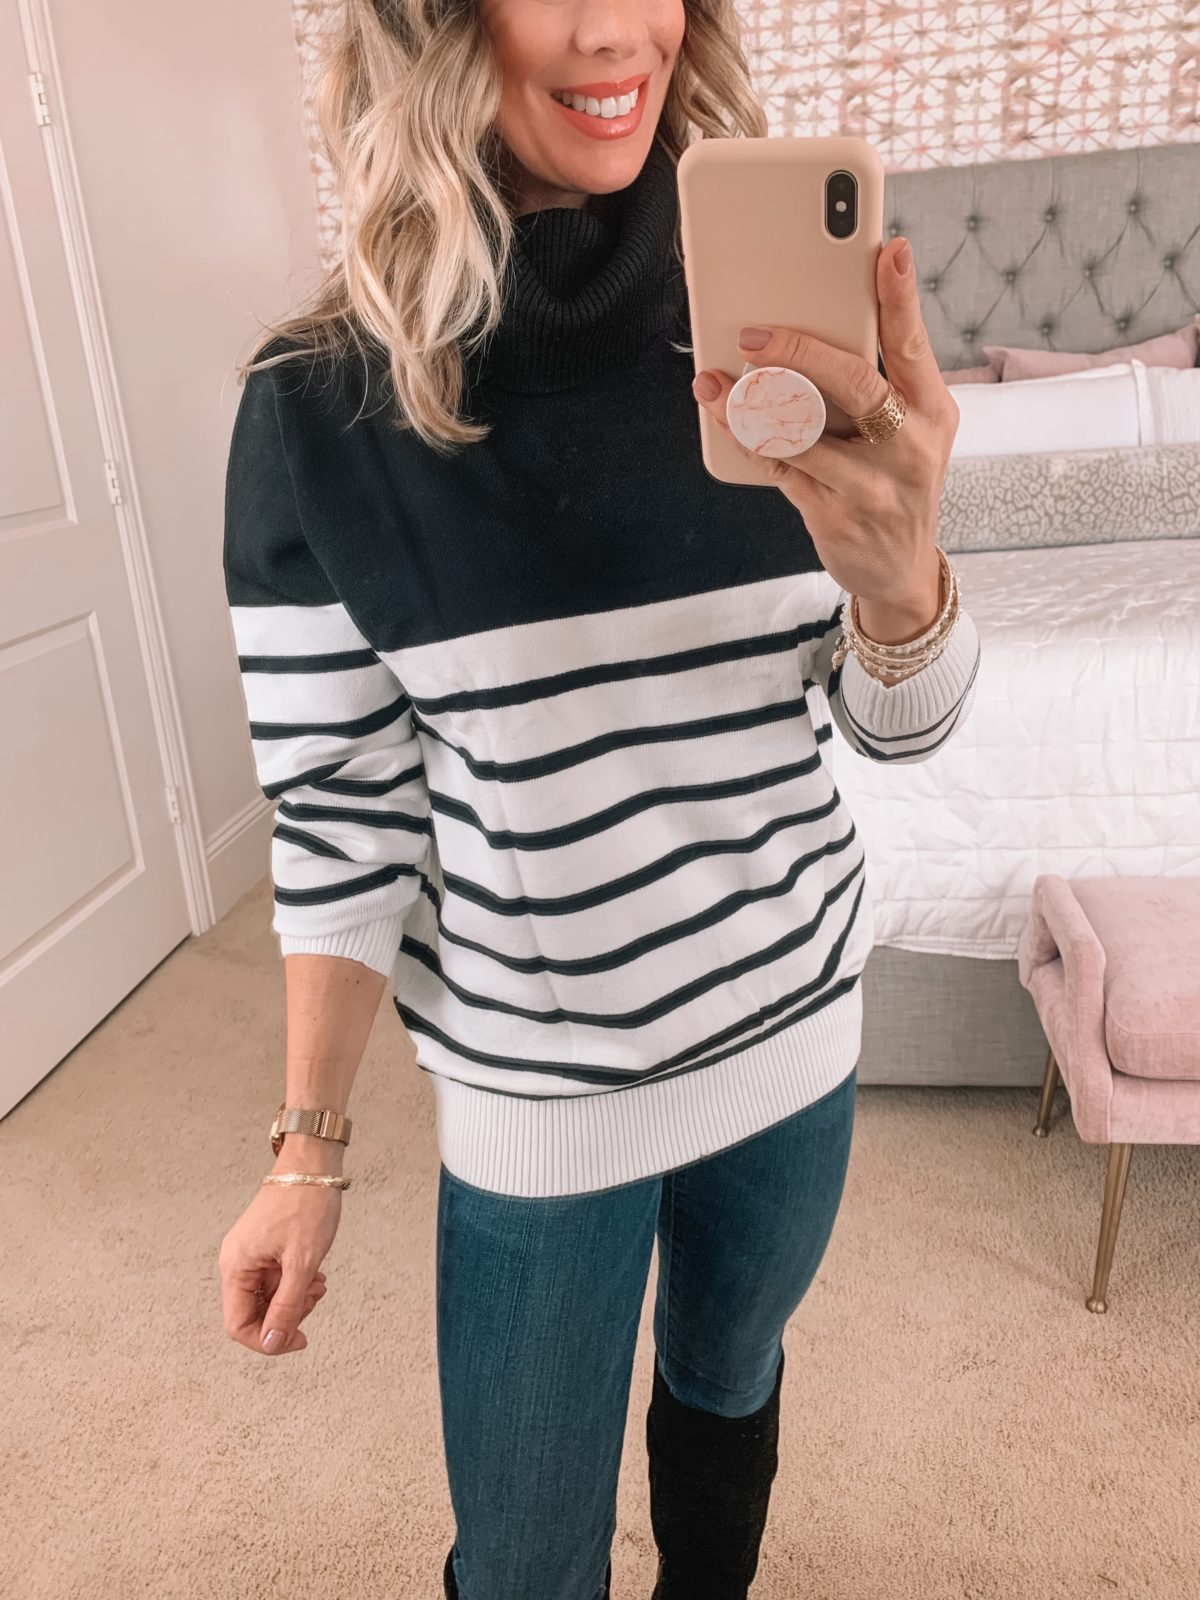 Amazon Fashion Faves, Colorblock Stripe Sweater, Jeans